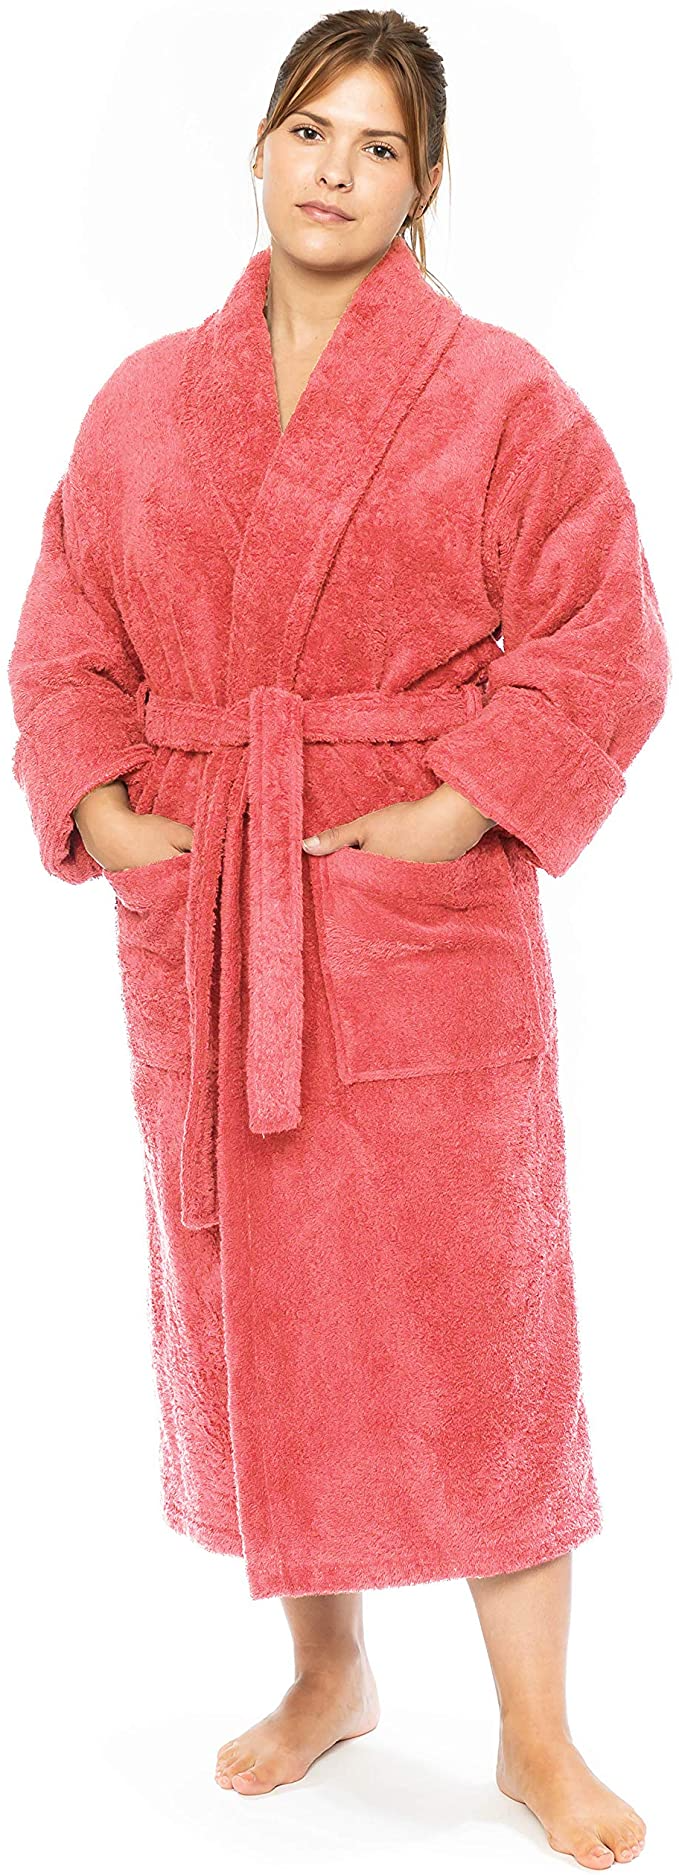 """<h3><h2>Luxury Premium 100% Turkish Cotton Hotel Bathrobe</h2></h3><br>Yes, you <em>can</em> get your hands on a luxe-looking and feeling Turkish-cotton resort-like robe for under $60 — and this top-rated Amazon-style comes in 10 hues.<br><br>One cozied-up customer praised: """"I LOVE this robe! This robe is just what I was looking for. It's super plush and feels great when you hop out of the shower. I have always wanted one of those luxury resort robes and now I finally have one!<br>I wasn't sure what to expect for the price. I've debated buying the robes they offer at those pricy hotels but they are SO EXPENSIVE! My old robe was on its last thread so I decided to look for one on Amazon. When I saw this one I thought it was worth a try and I'm glad I ordered it.""""<br><br><br><br><strong>Classic Turkish Towels</strong> Luxury Premium 100% Turkish Cotton Hotel Bathrobe, $, available at <a href=""""https://amzn.to/37pQ2SQ"""" rel=""""nofollow noopener"""" target=""""_blank"""" data-ylk=""""slk:Amazon"""" class=""""link rapid-noclick-resp"""">Amazon</a>"""